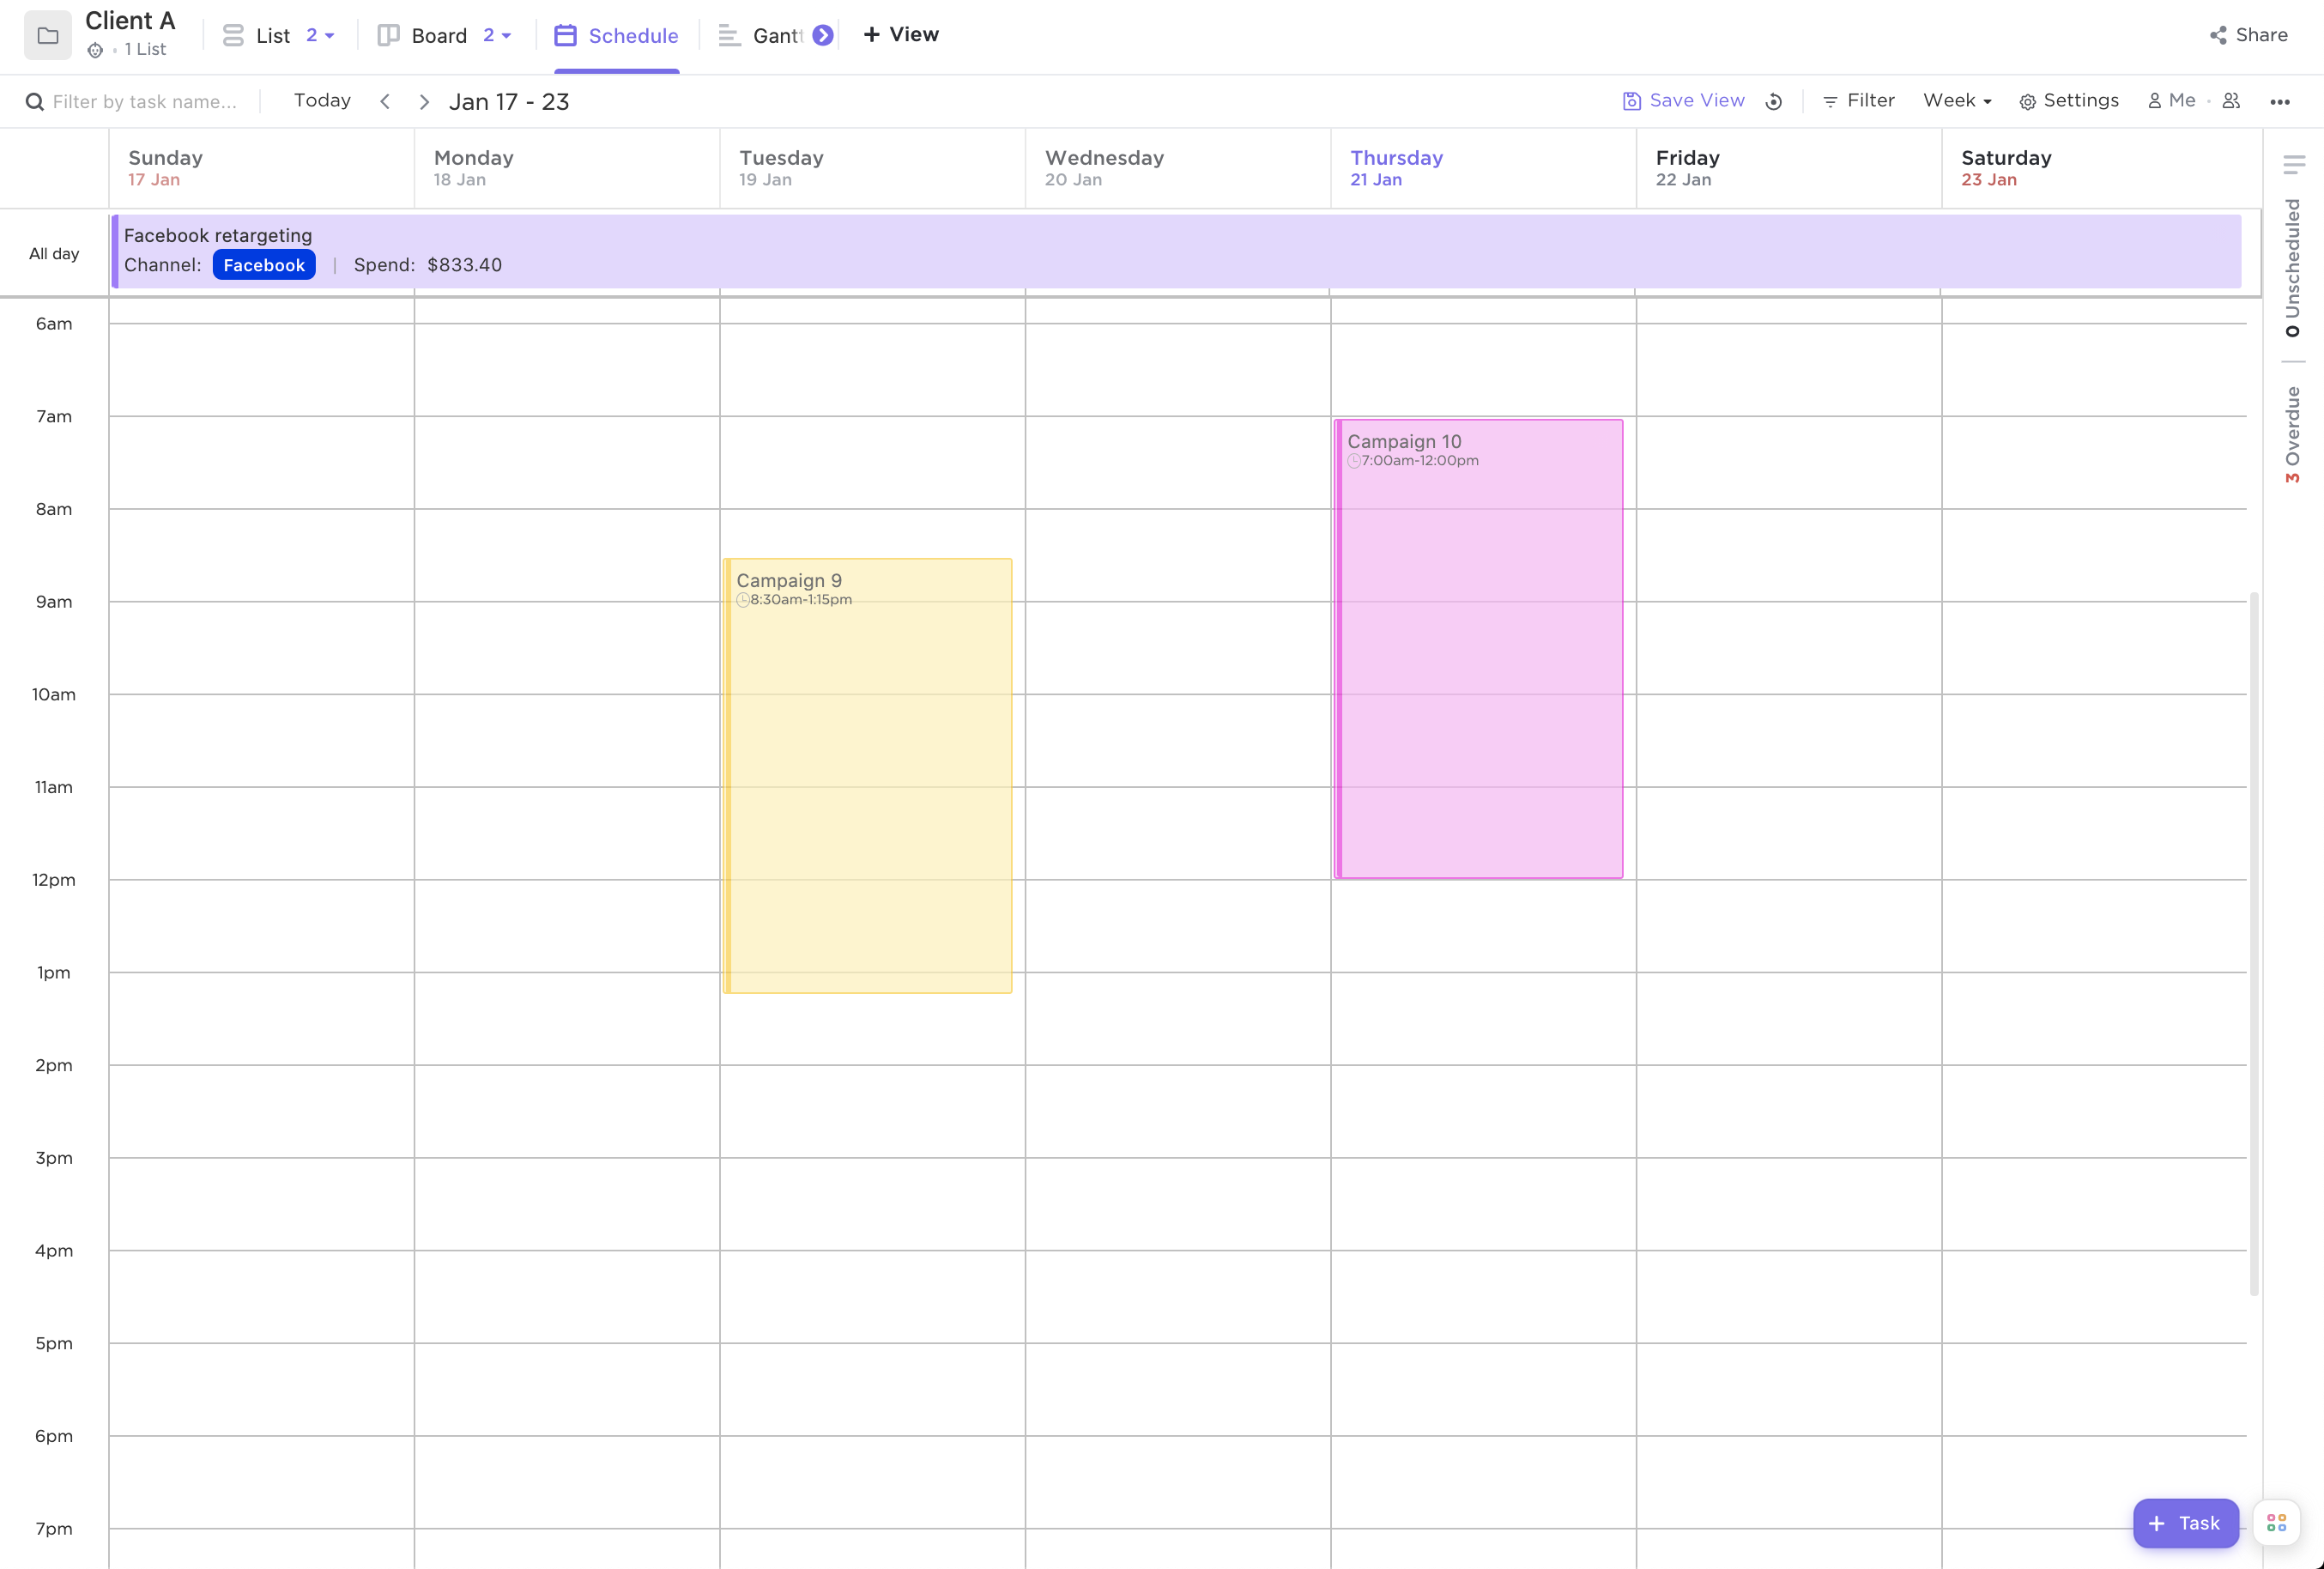 Screenshot of Calendar view by week